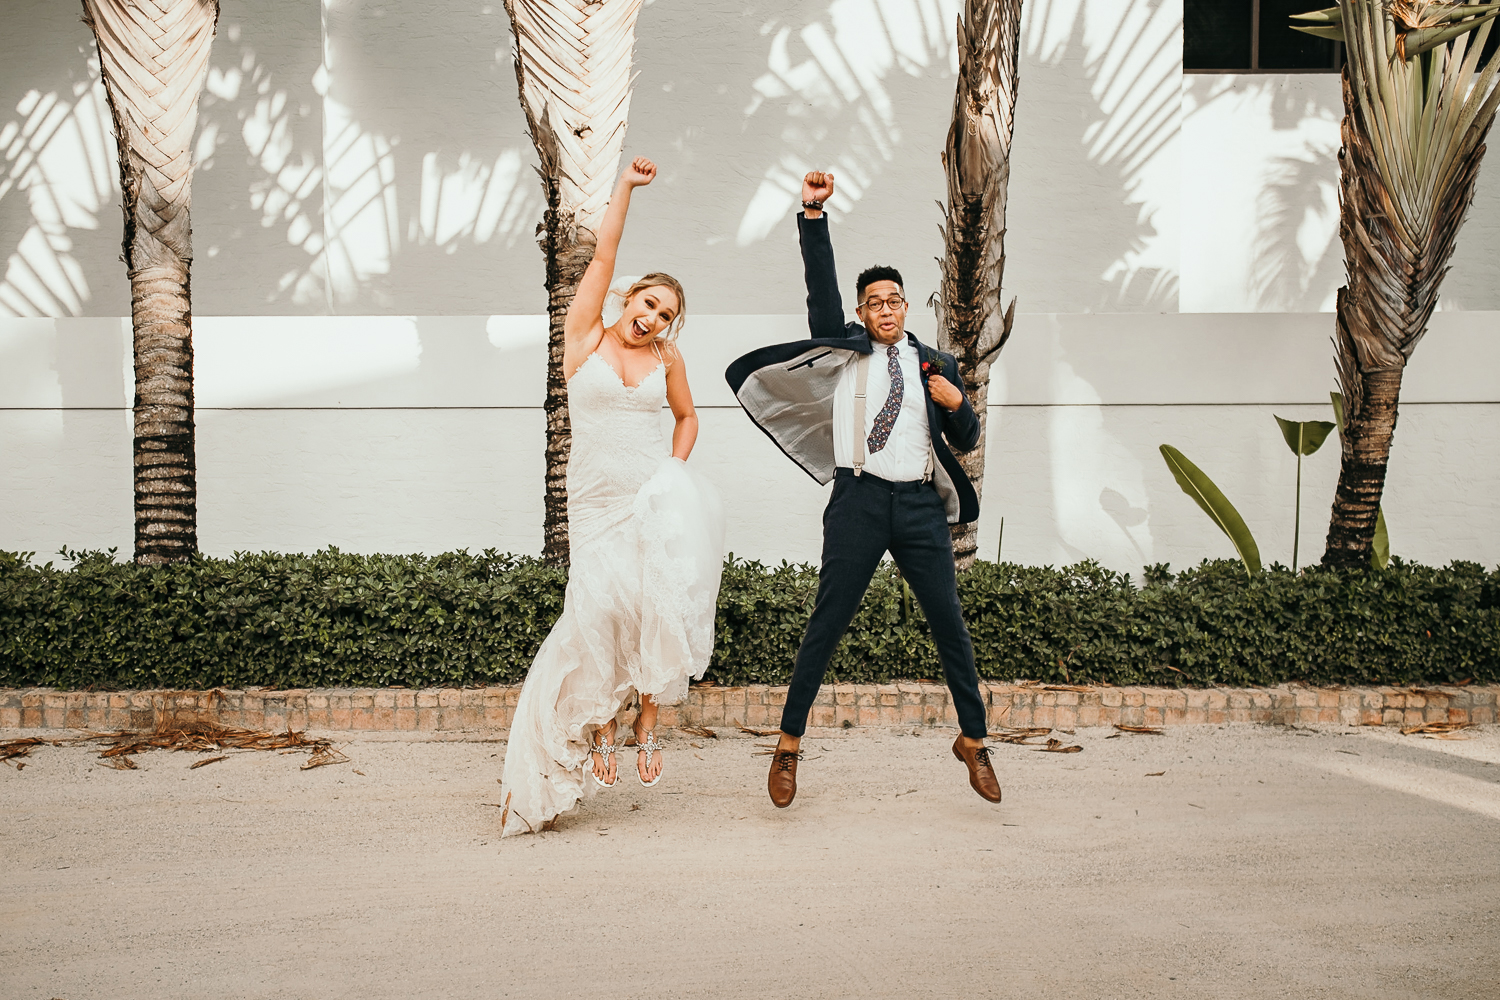 newlyweds jumping in air